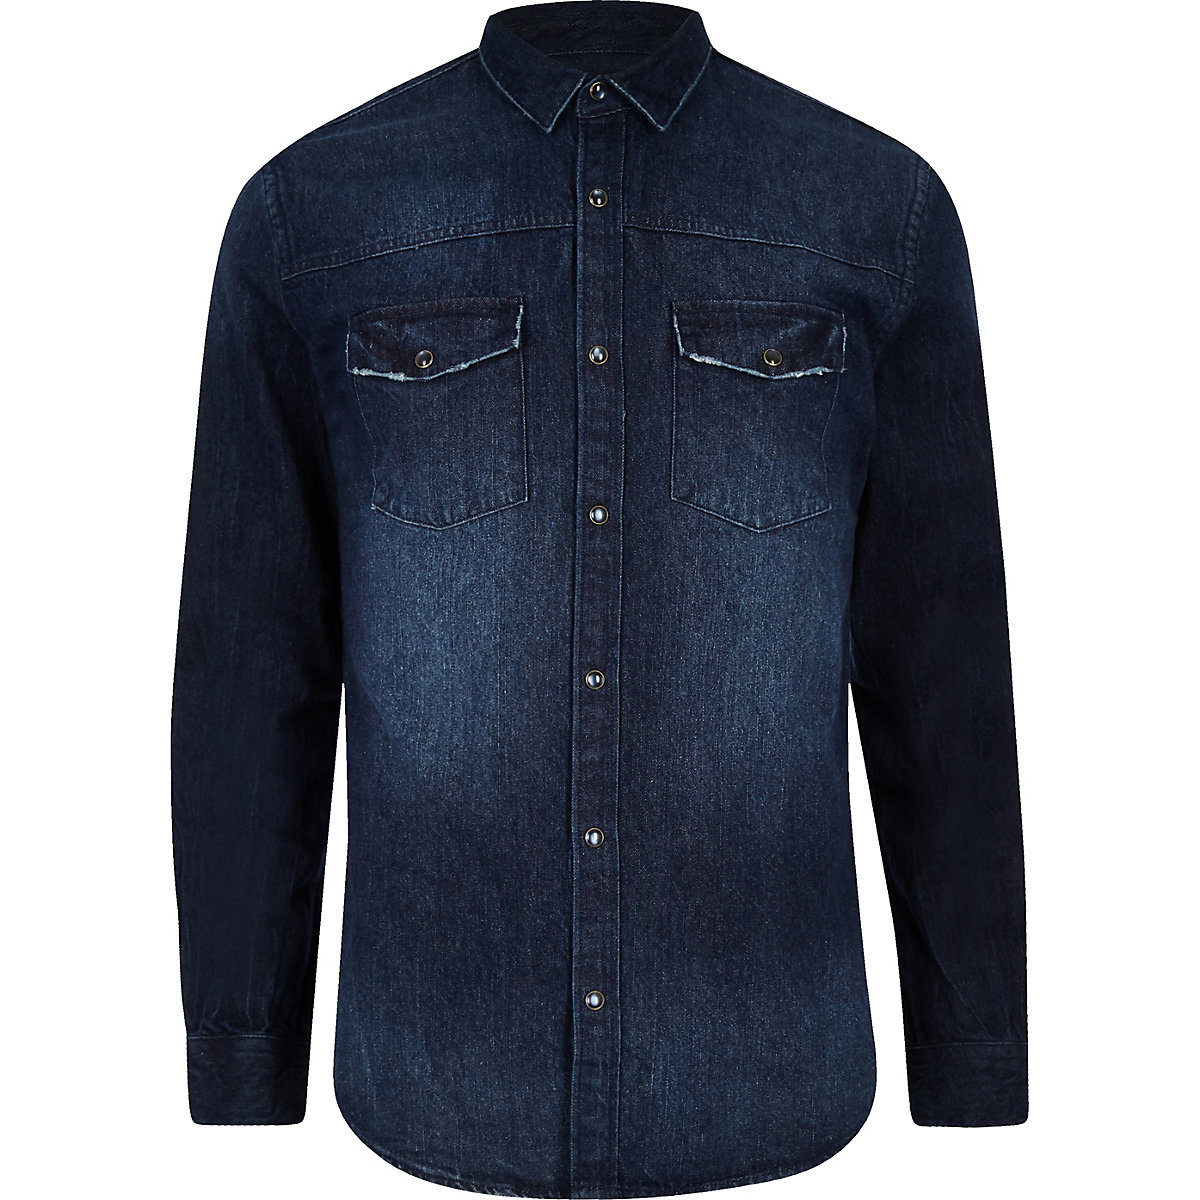 Only & Sons blue denim shirt